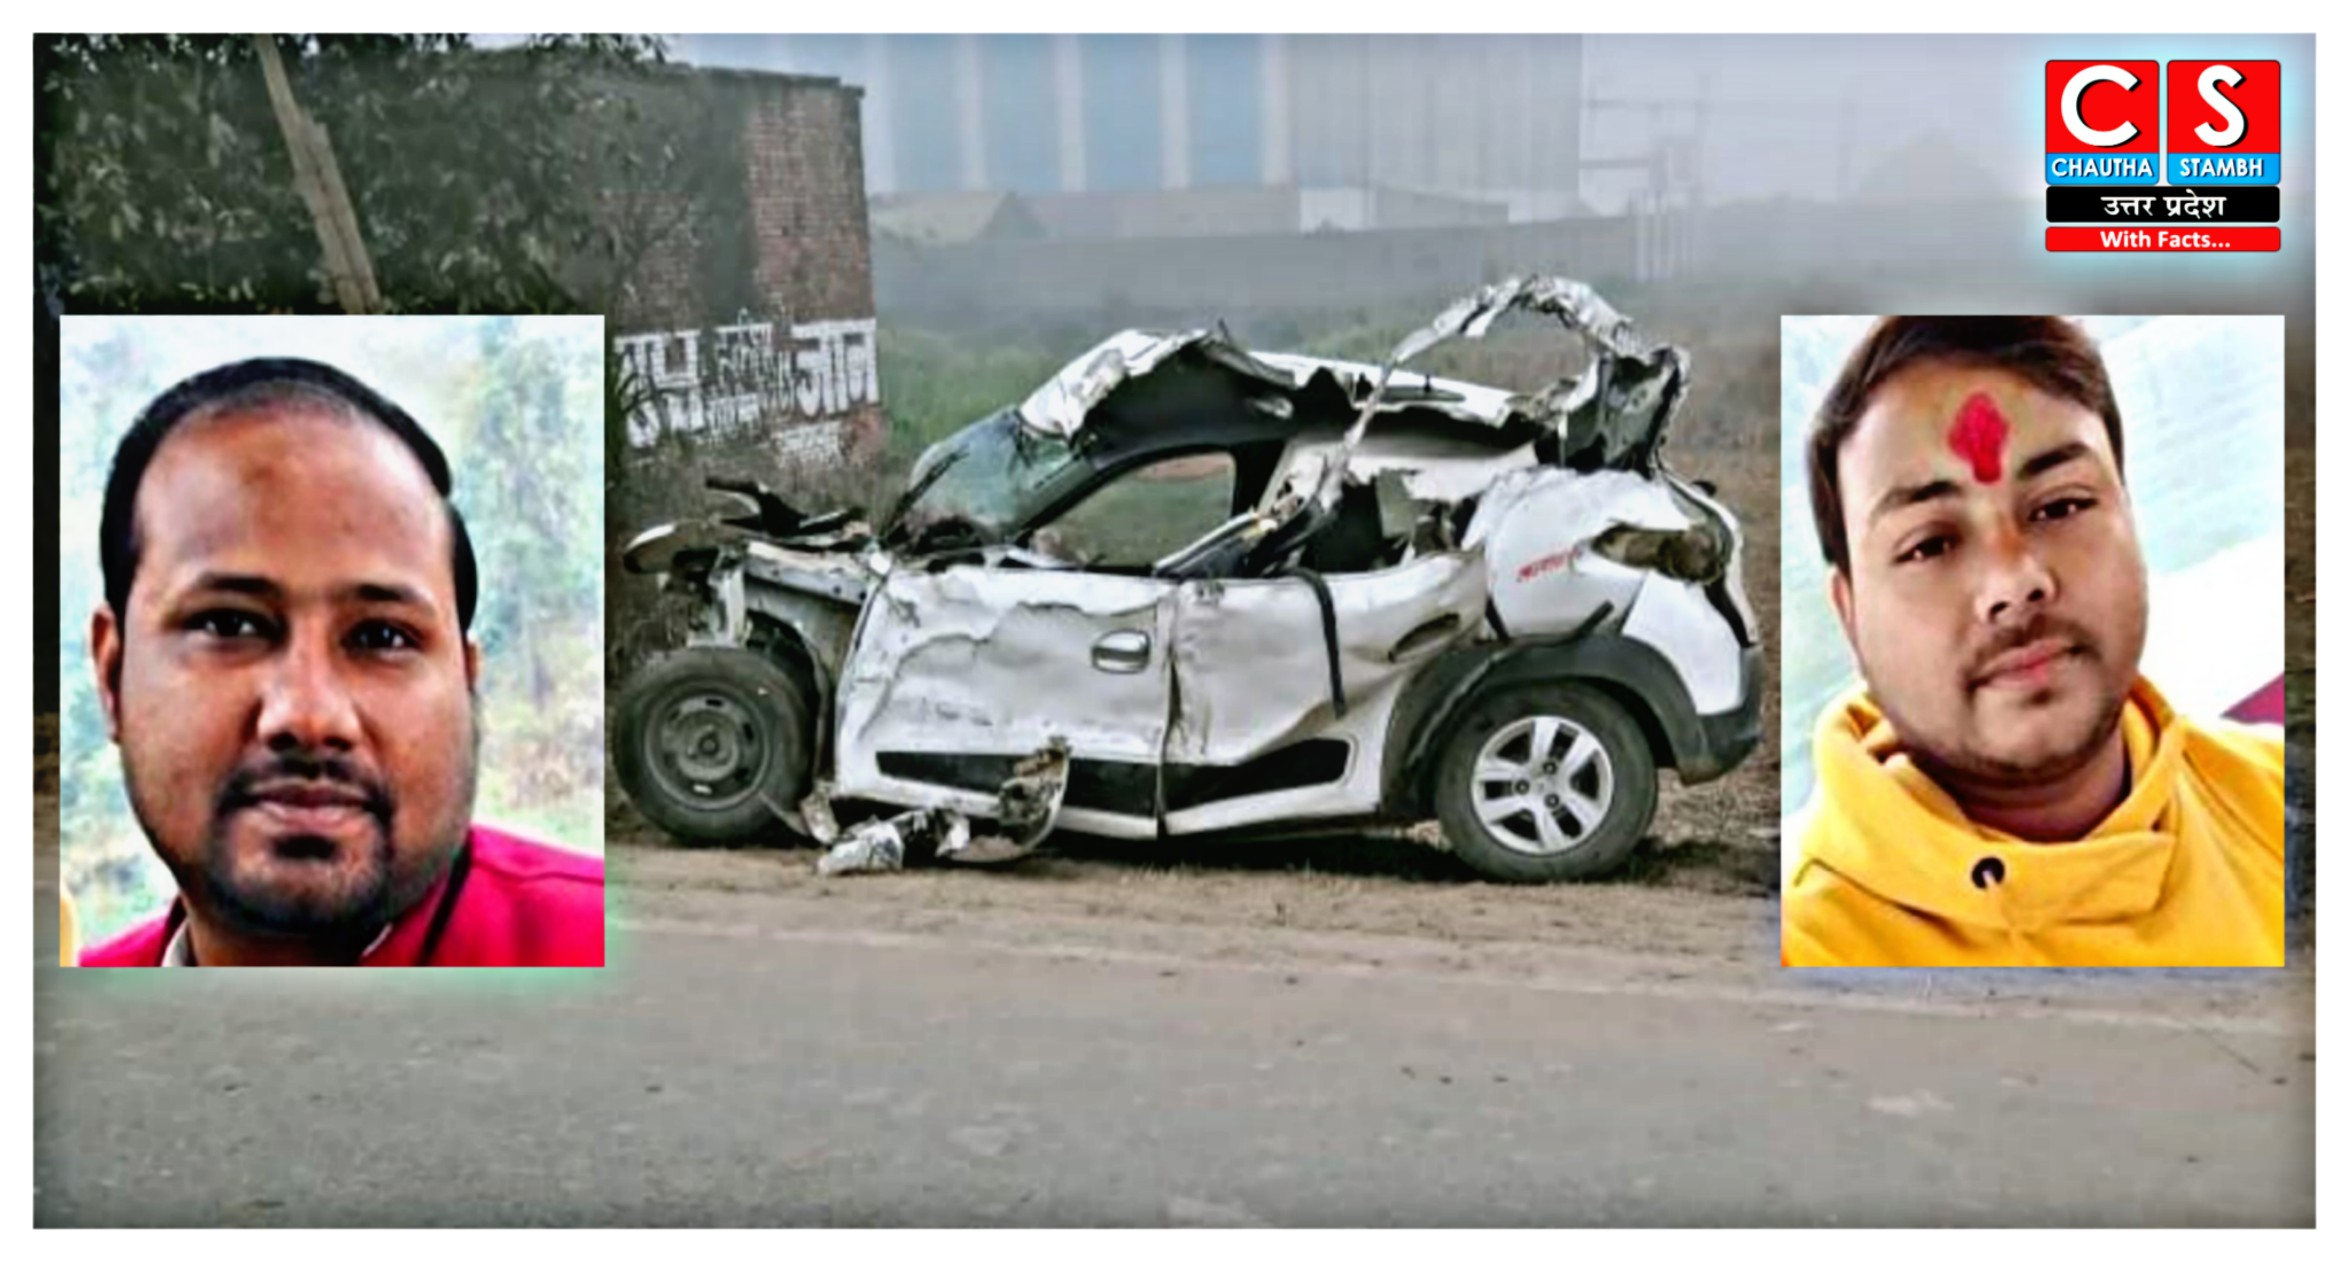 Bhagwanpur Father was raised before being born, uncle and nephew died in a tragic accident_